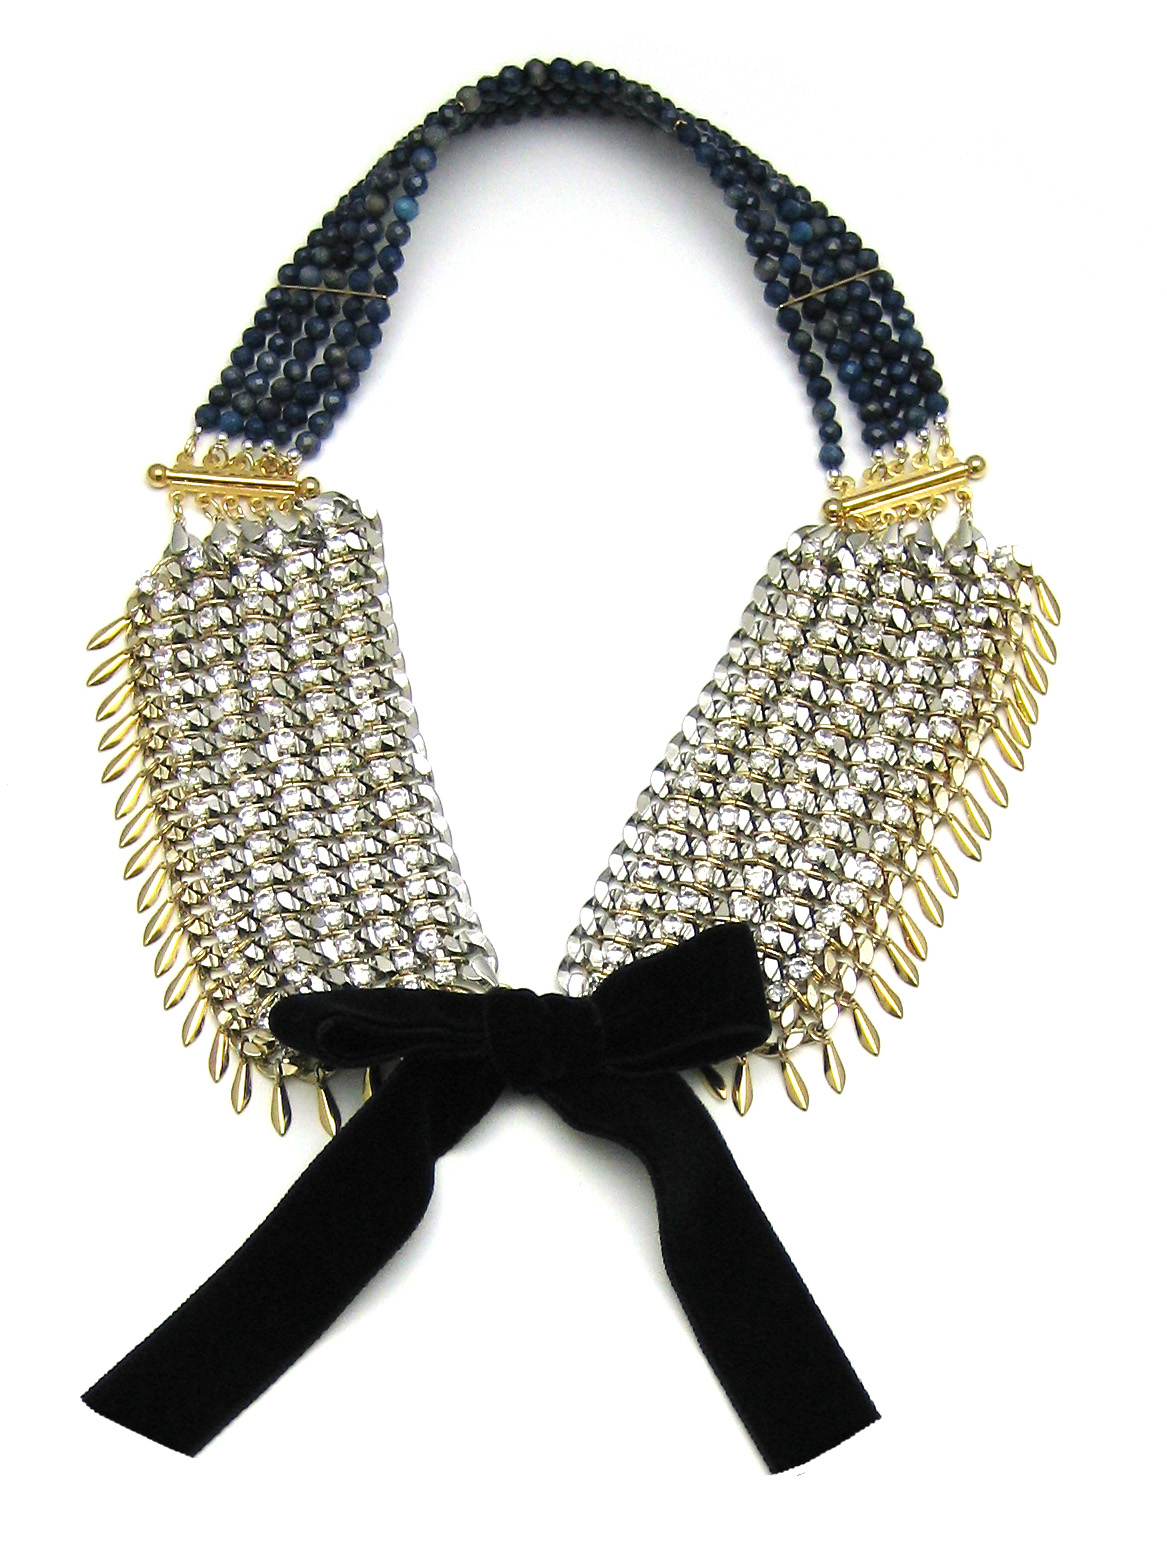 025 Crystal Chain Collar.jpg